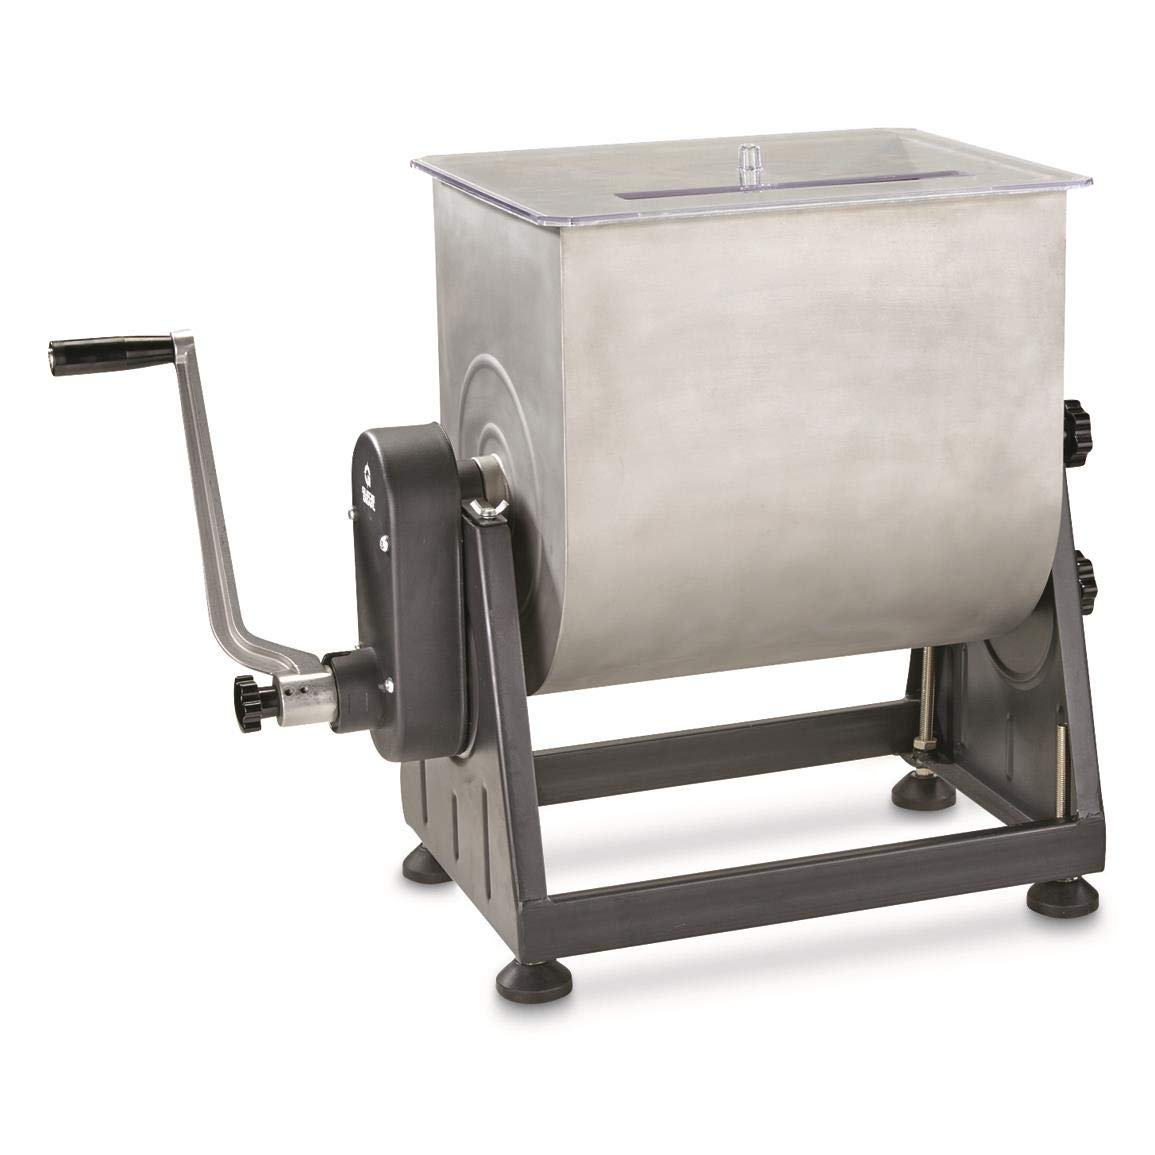 Guide Gear 7 Gallon Stainless Steel Meat Mixer with Tilt by Guide Gear